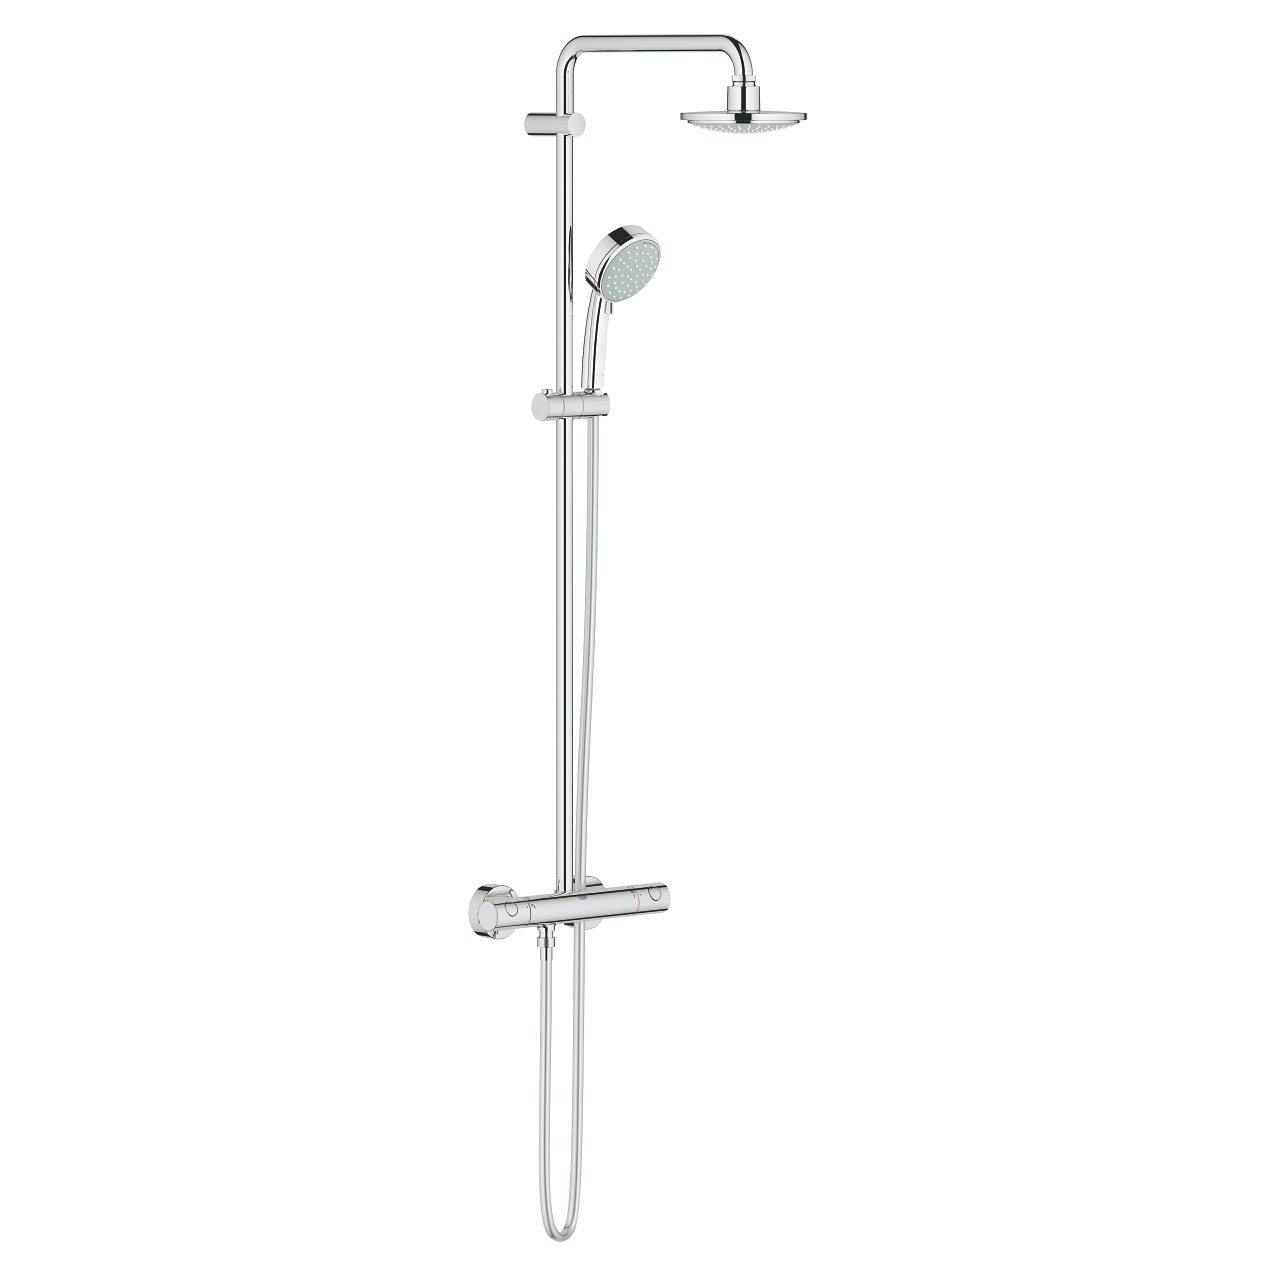 B GROHE GROHTHERM 1000C+Tempesta Cosmo 27922 - Tovar | MasMasaryk